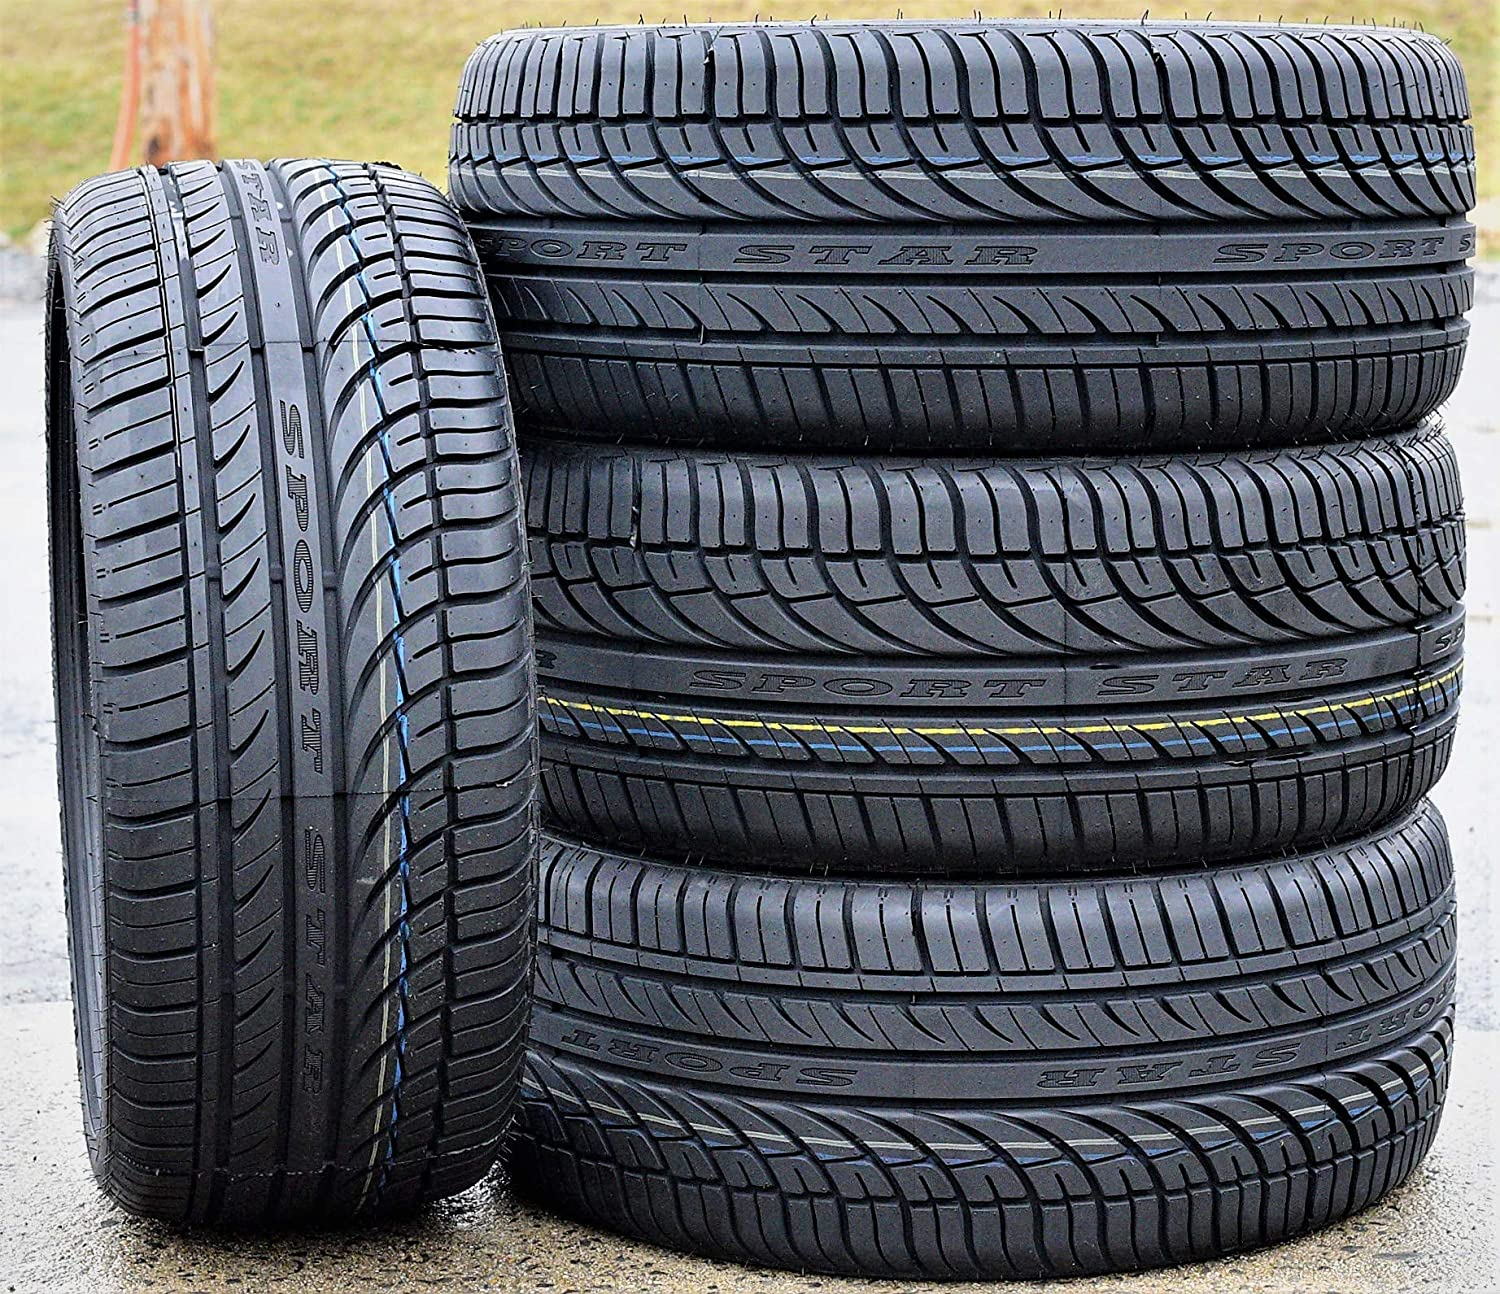 Fullway HP108 All-Season High Performance Radial Tires-295//30ZR22 103W XL Set of 2 TWO